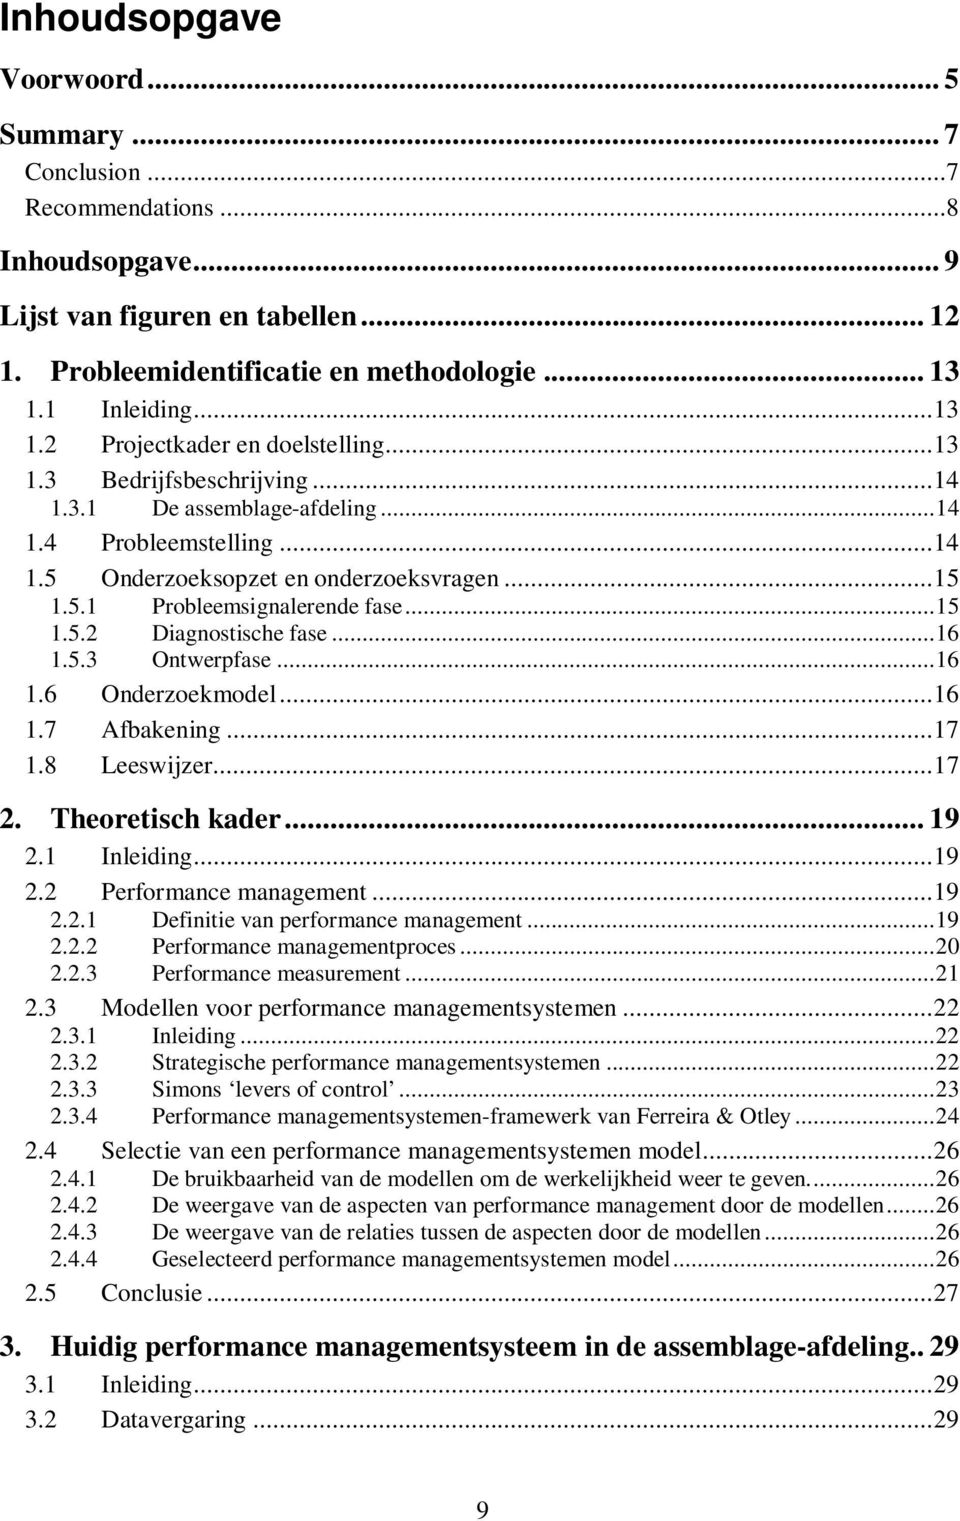 ..15 1.5.2 Diagnostische fase...16 1.5.3 Ontwerpfase...16 1.6 Onderzoekmodel...16 1.7 Afbakening...17 1.8 Leeswijzer...17 2. Theoretisch kader... 19 2.1 Inleiding...19 2.2 Performance management...19 2.2.1 Definitie van performance management.